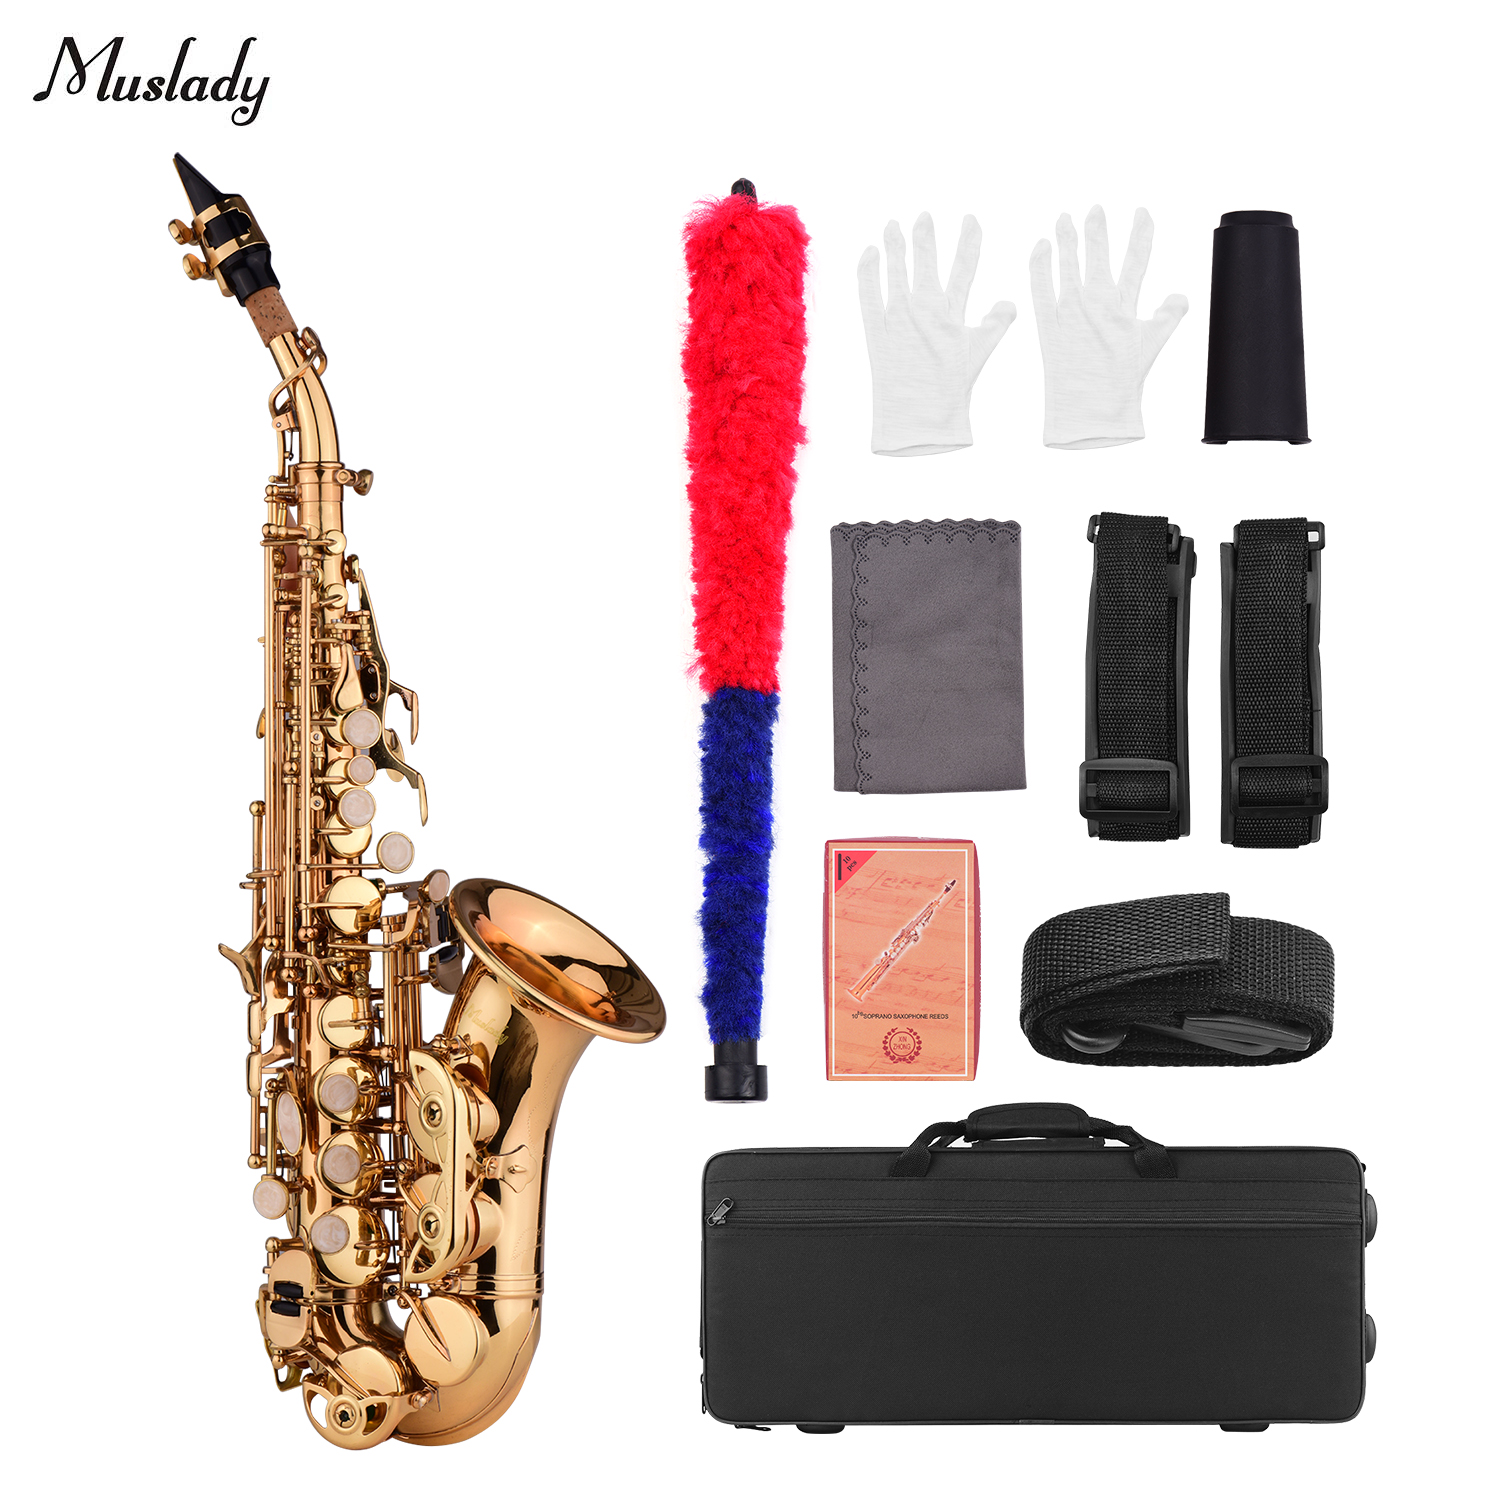 Muslady Mini Bb Soprano Saxophone Sax Brass Material Woodwind Instrument with Case Gloves Cleaning Cloth Brush Reeds Sax Strap